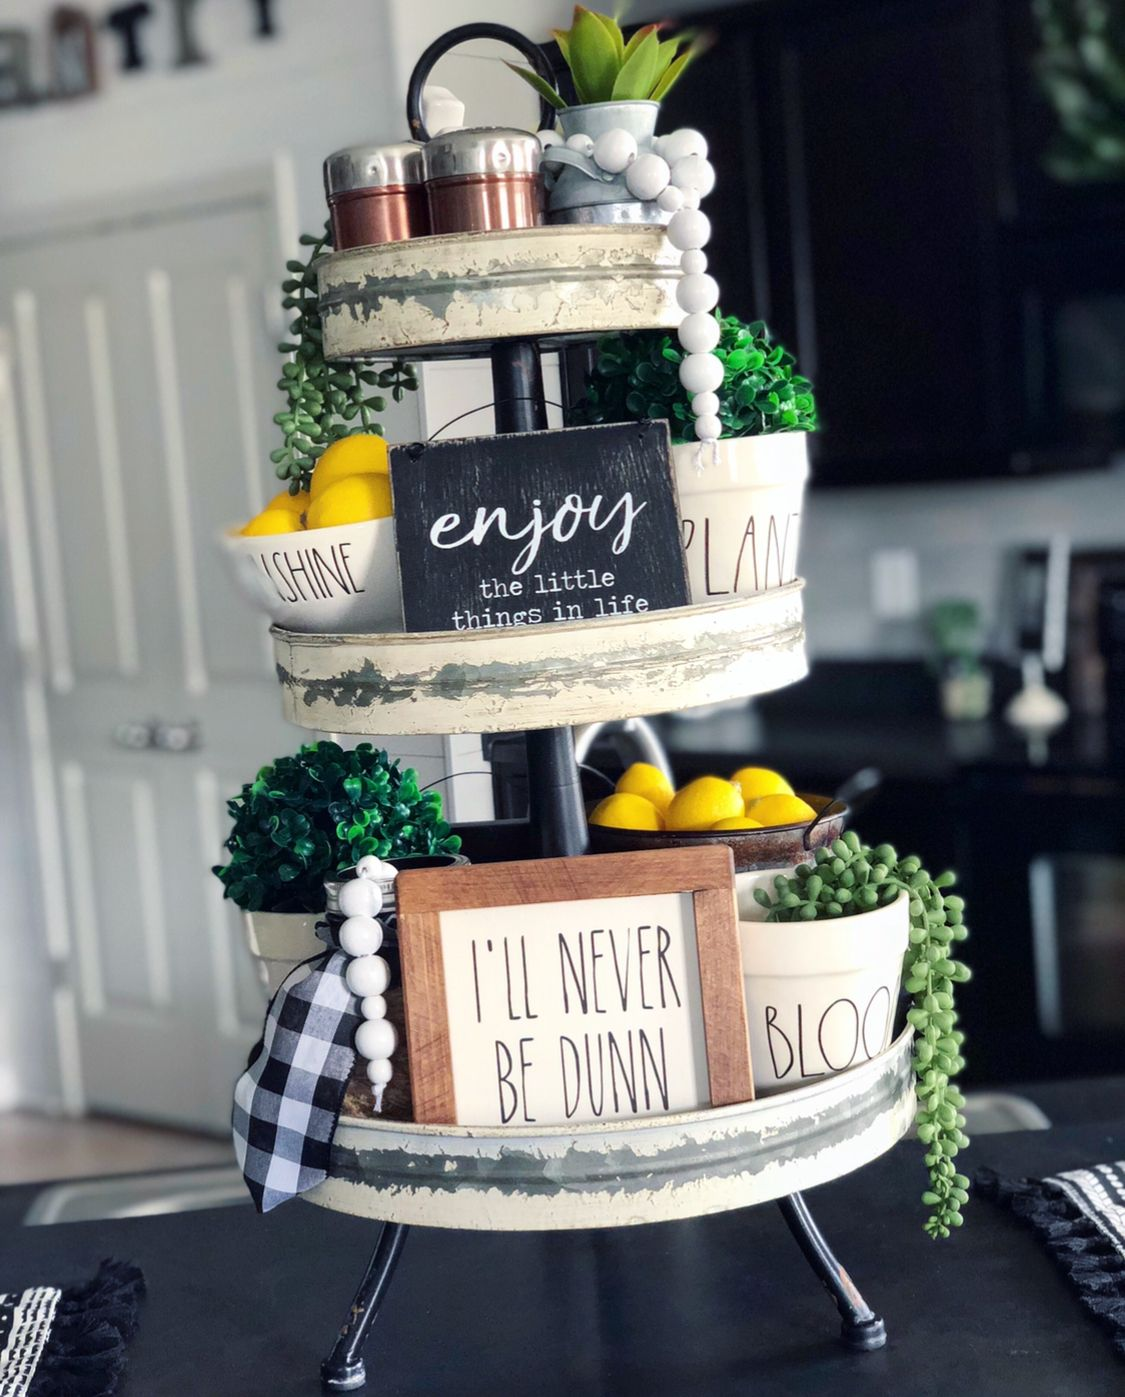 Tiered Tray Rae Dunn Three Tiered Tray Raedunn Tieredtray Farmhouse Hobbylobby Rusticmodern Modernfarmhouse Tiered Tray Decor Lemon Decor Tiered Stand